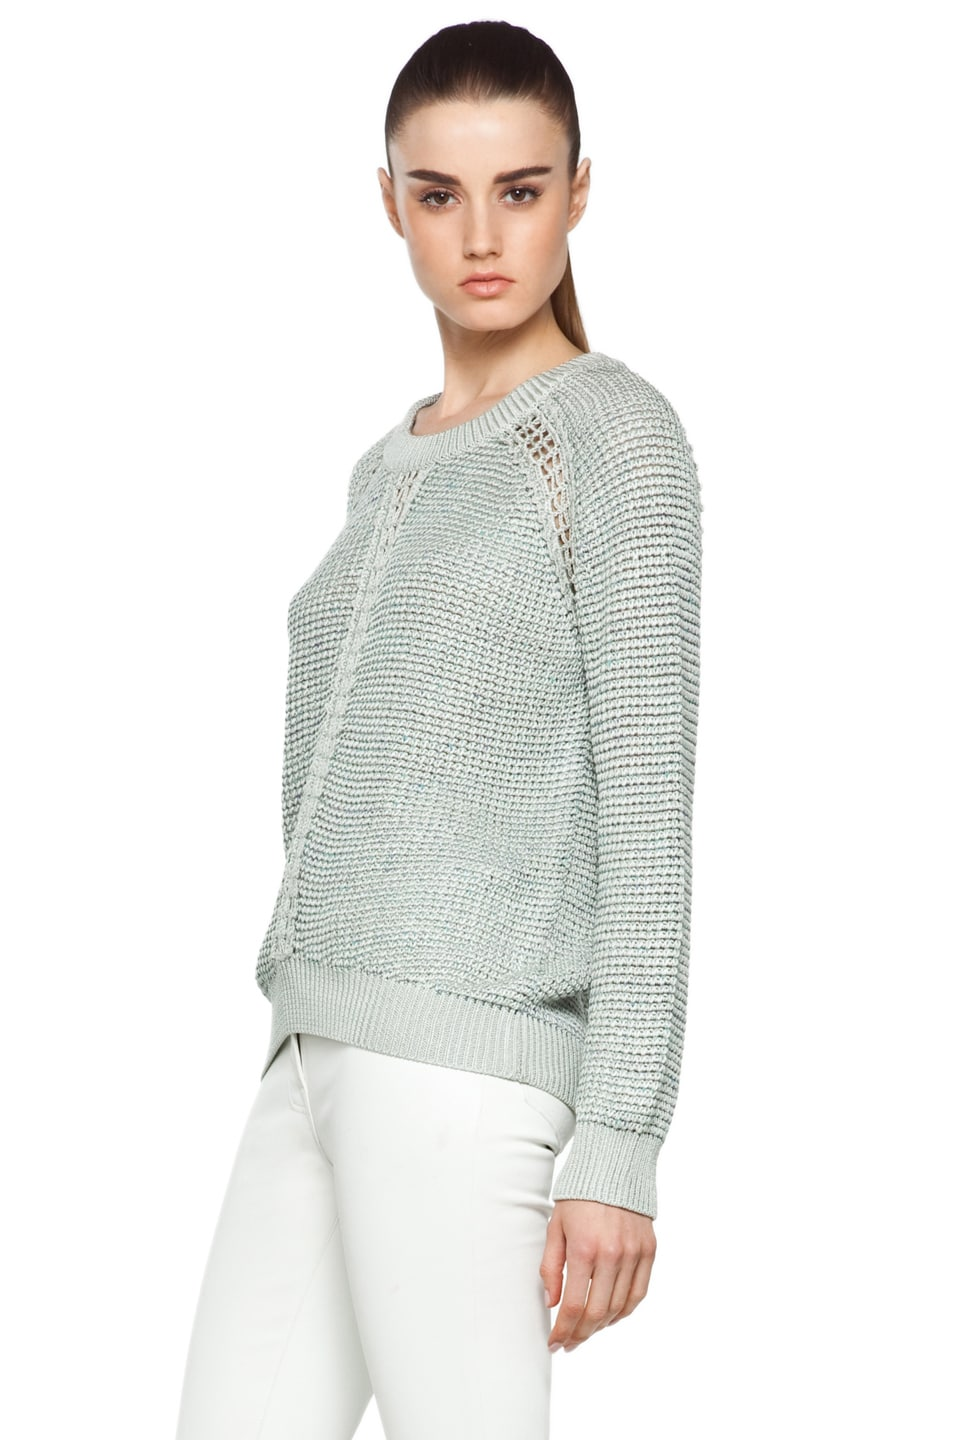 Image 2 of Theyskens' Theory Yigly Kyrt Sweater in Mint Green